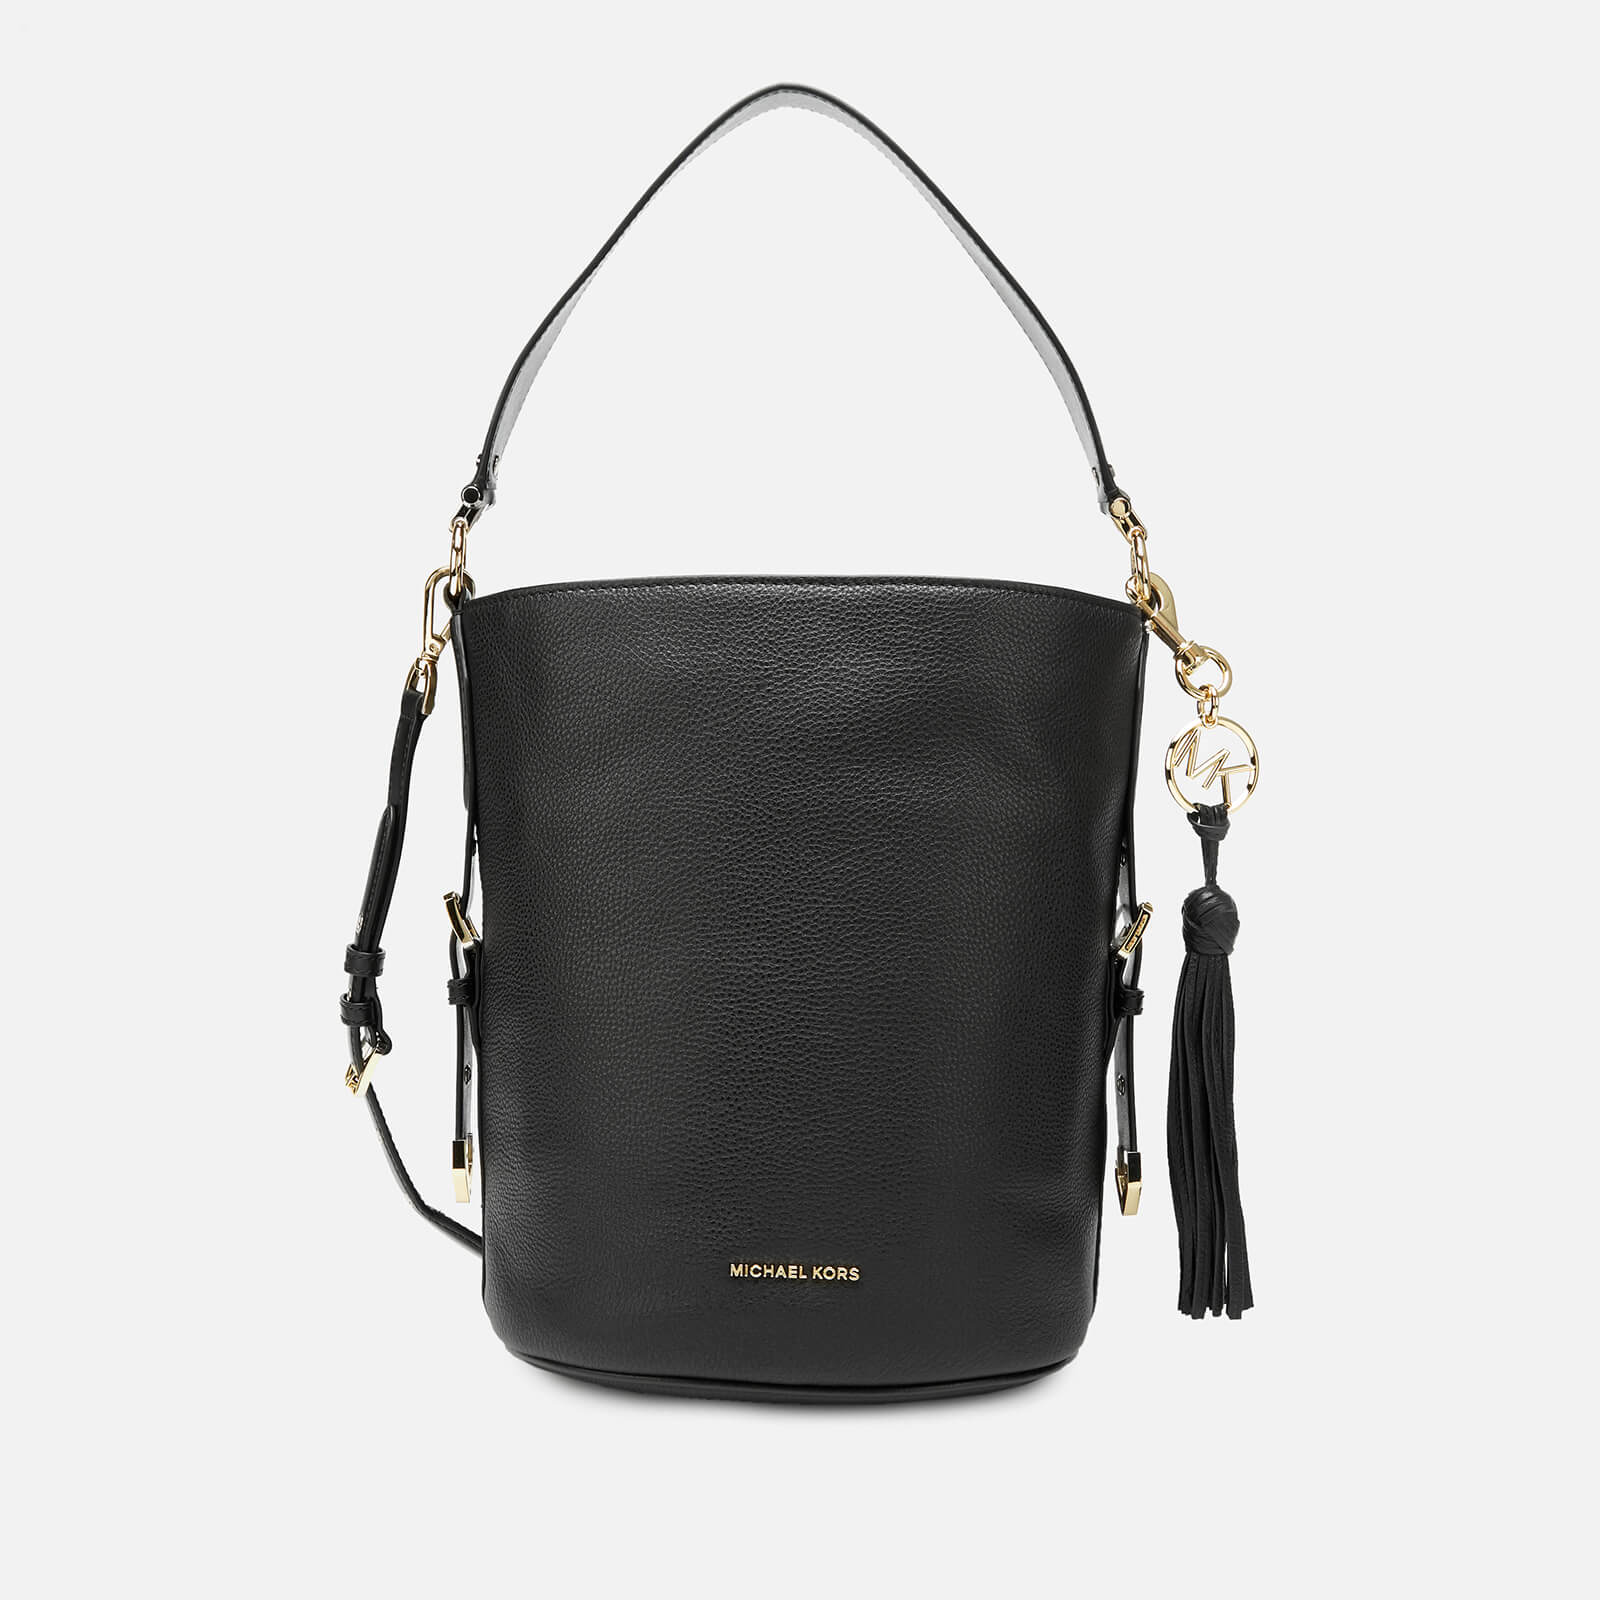 95c0ac8f374b MICHAEL MICHAEL KORS Women's Brooke Medium Bucket Messenger Bag - Black -  Free UK Delivery over £50